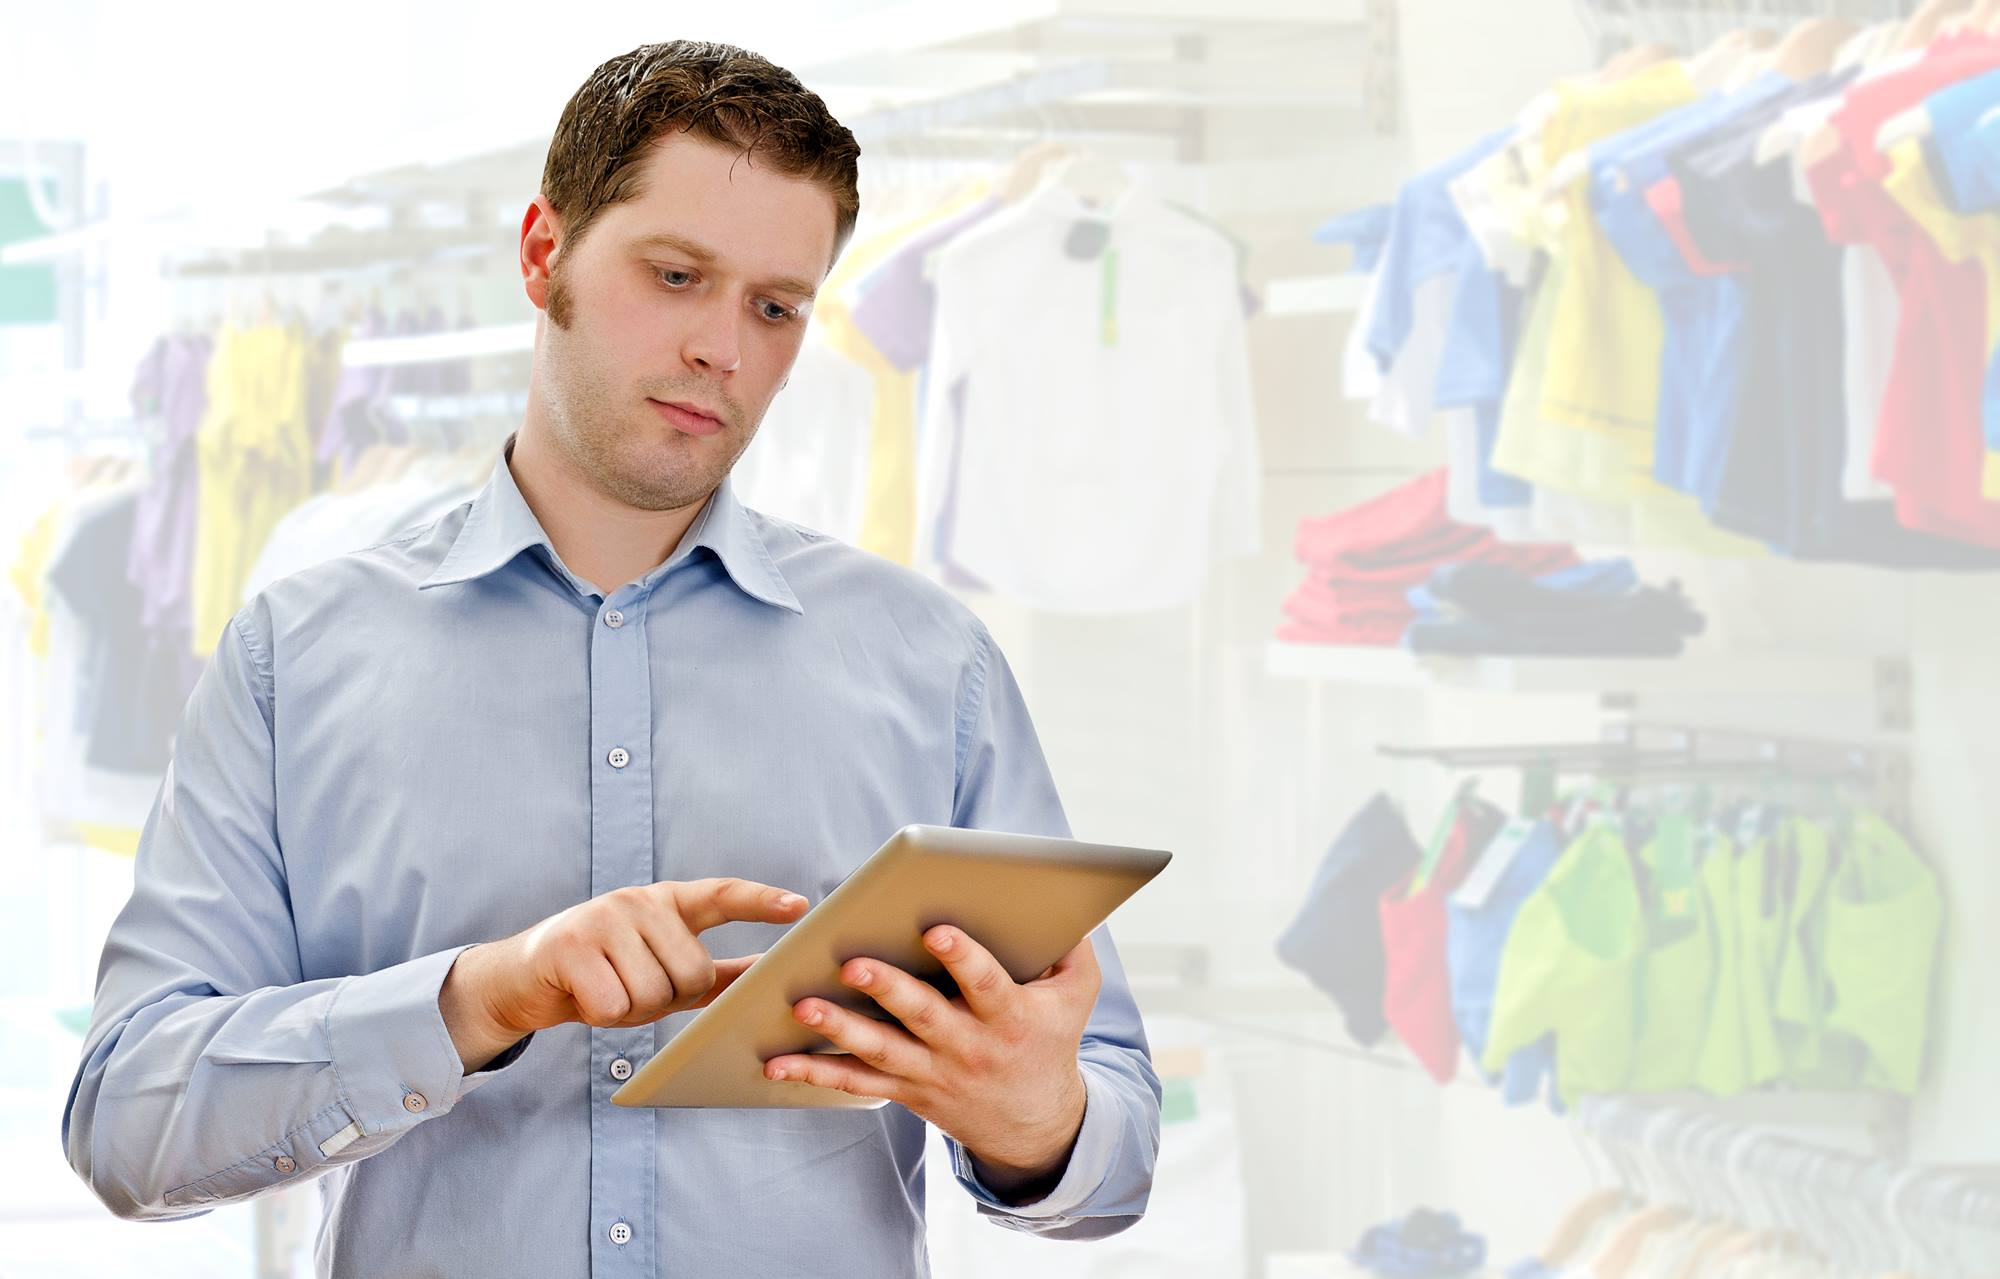 Supervisor with tablet pc in the clothing store